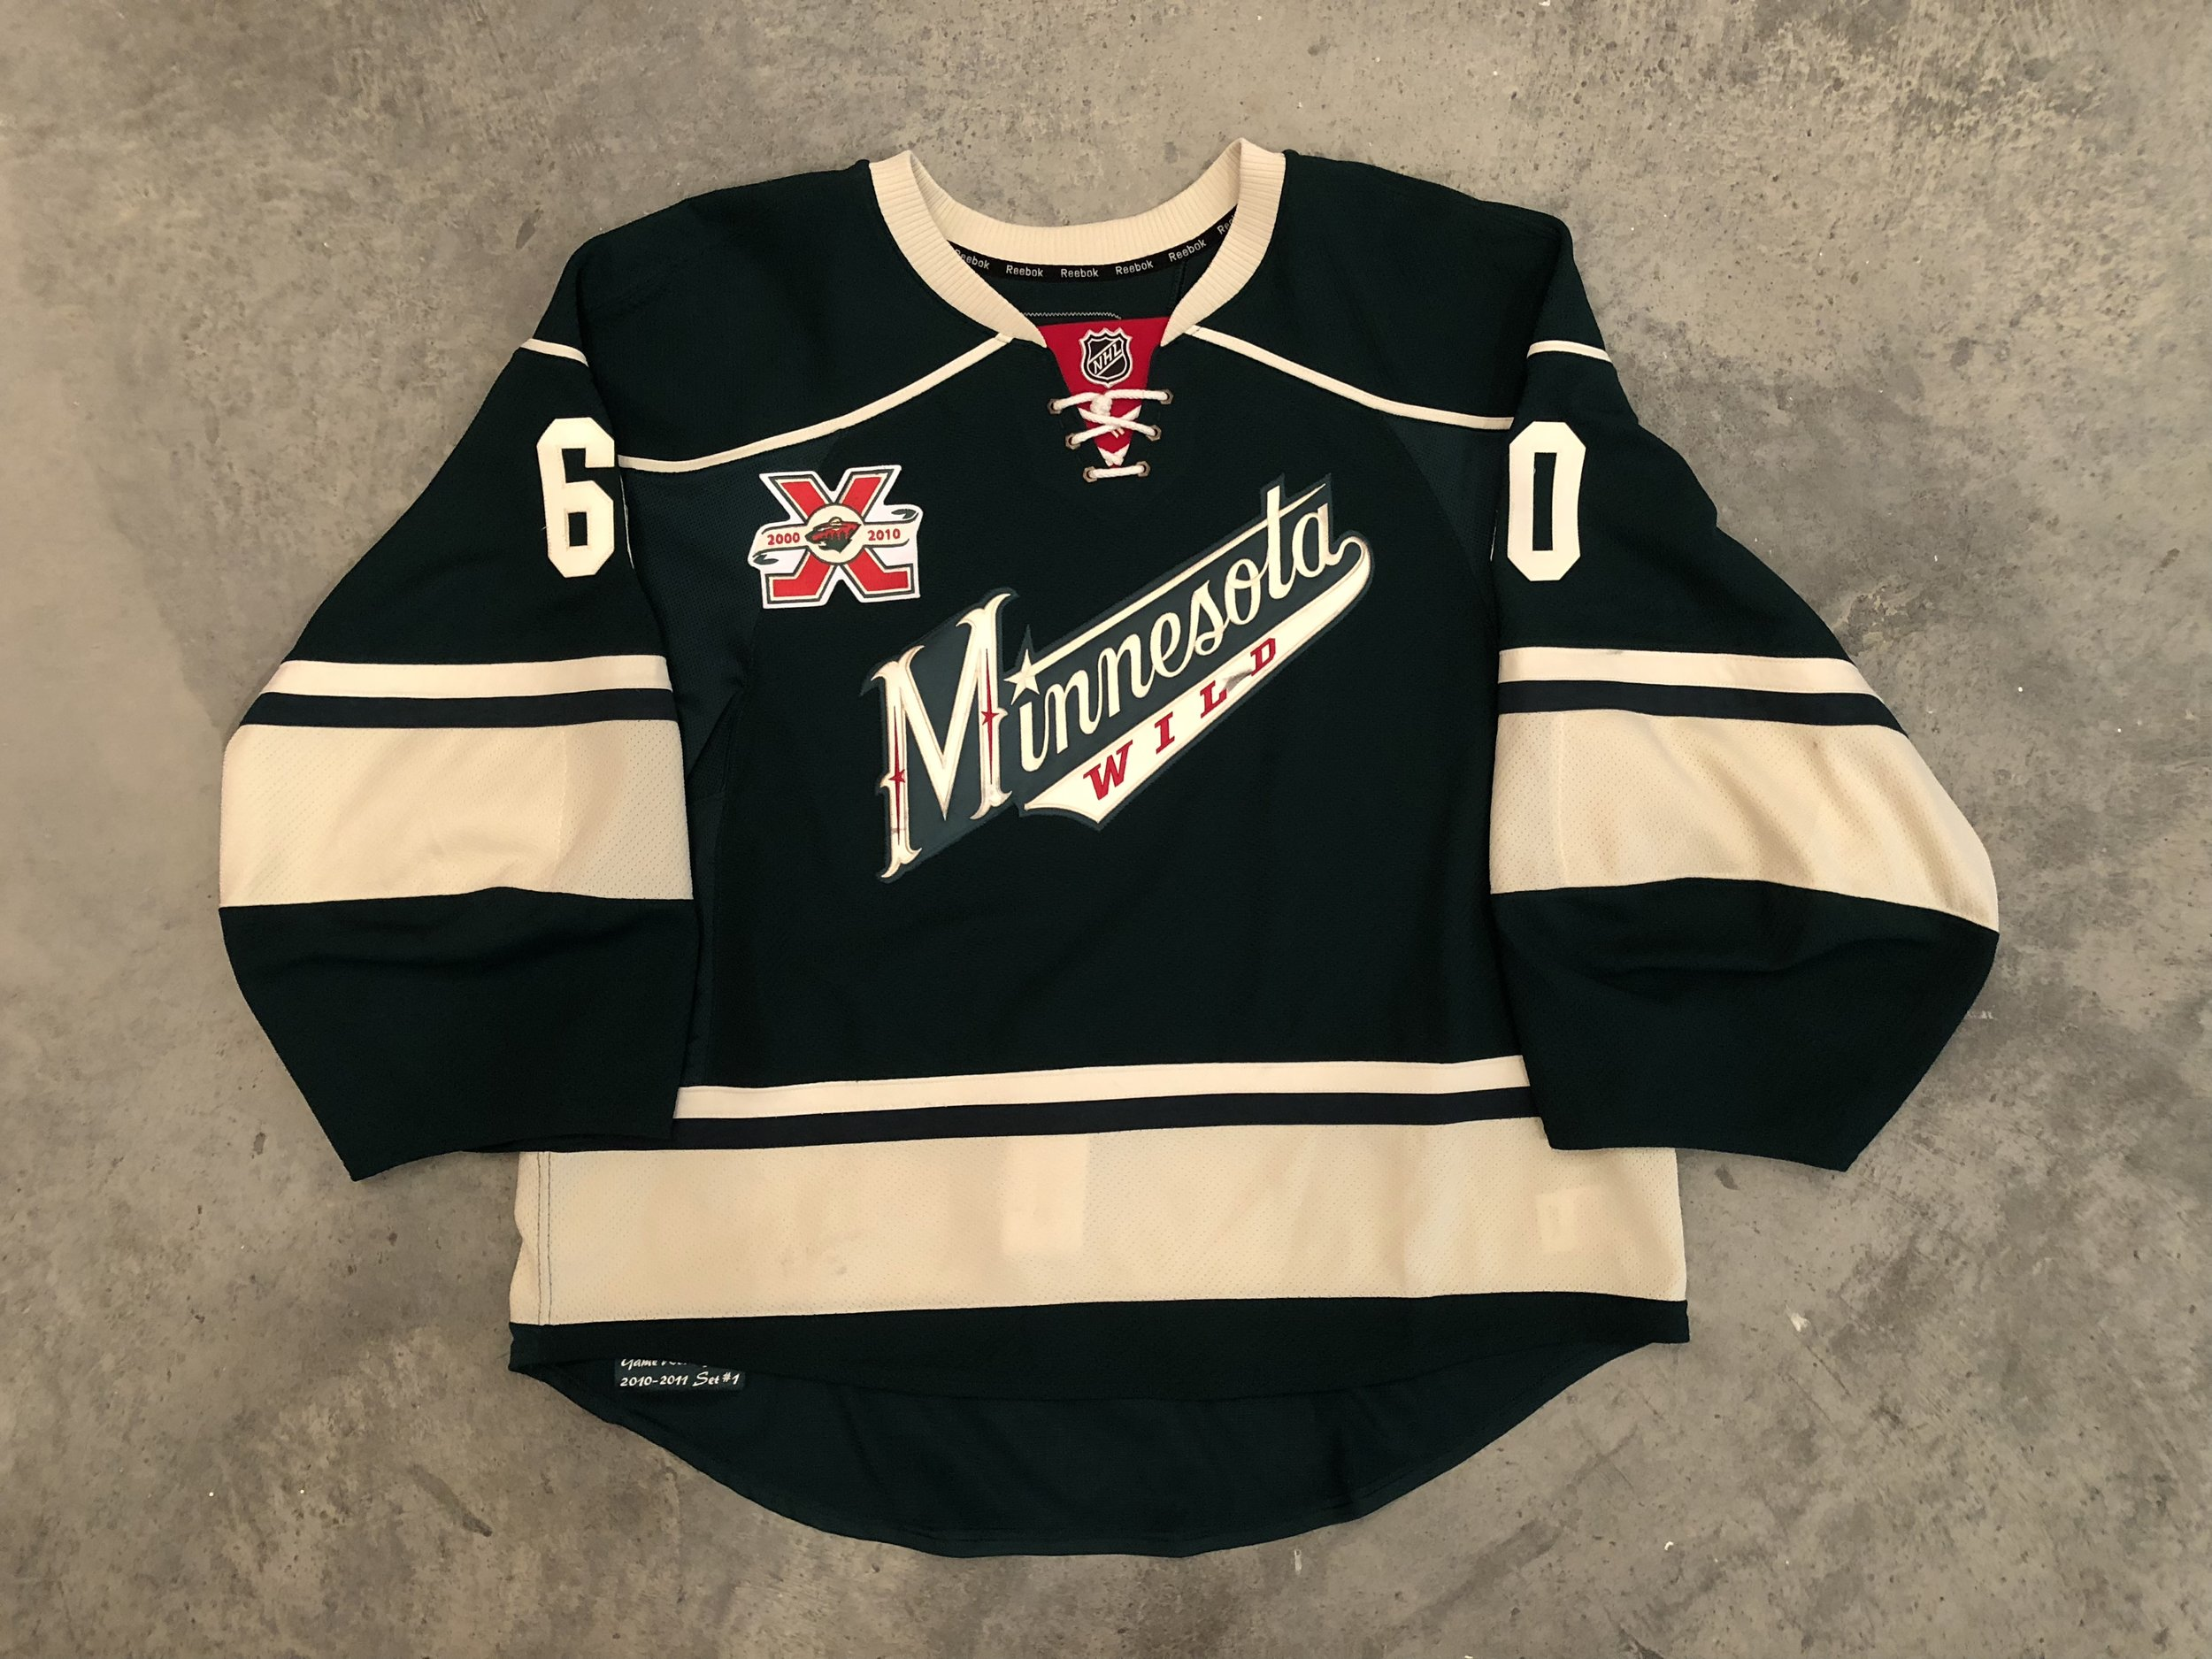 2010-11 Jose Theodore game worn home jersey with Wild 10th anniversary patch